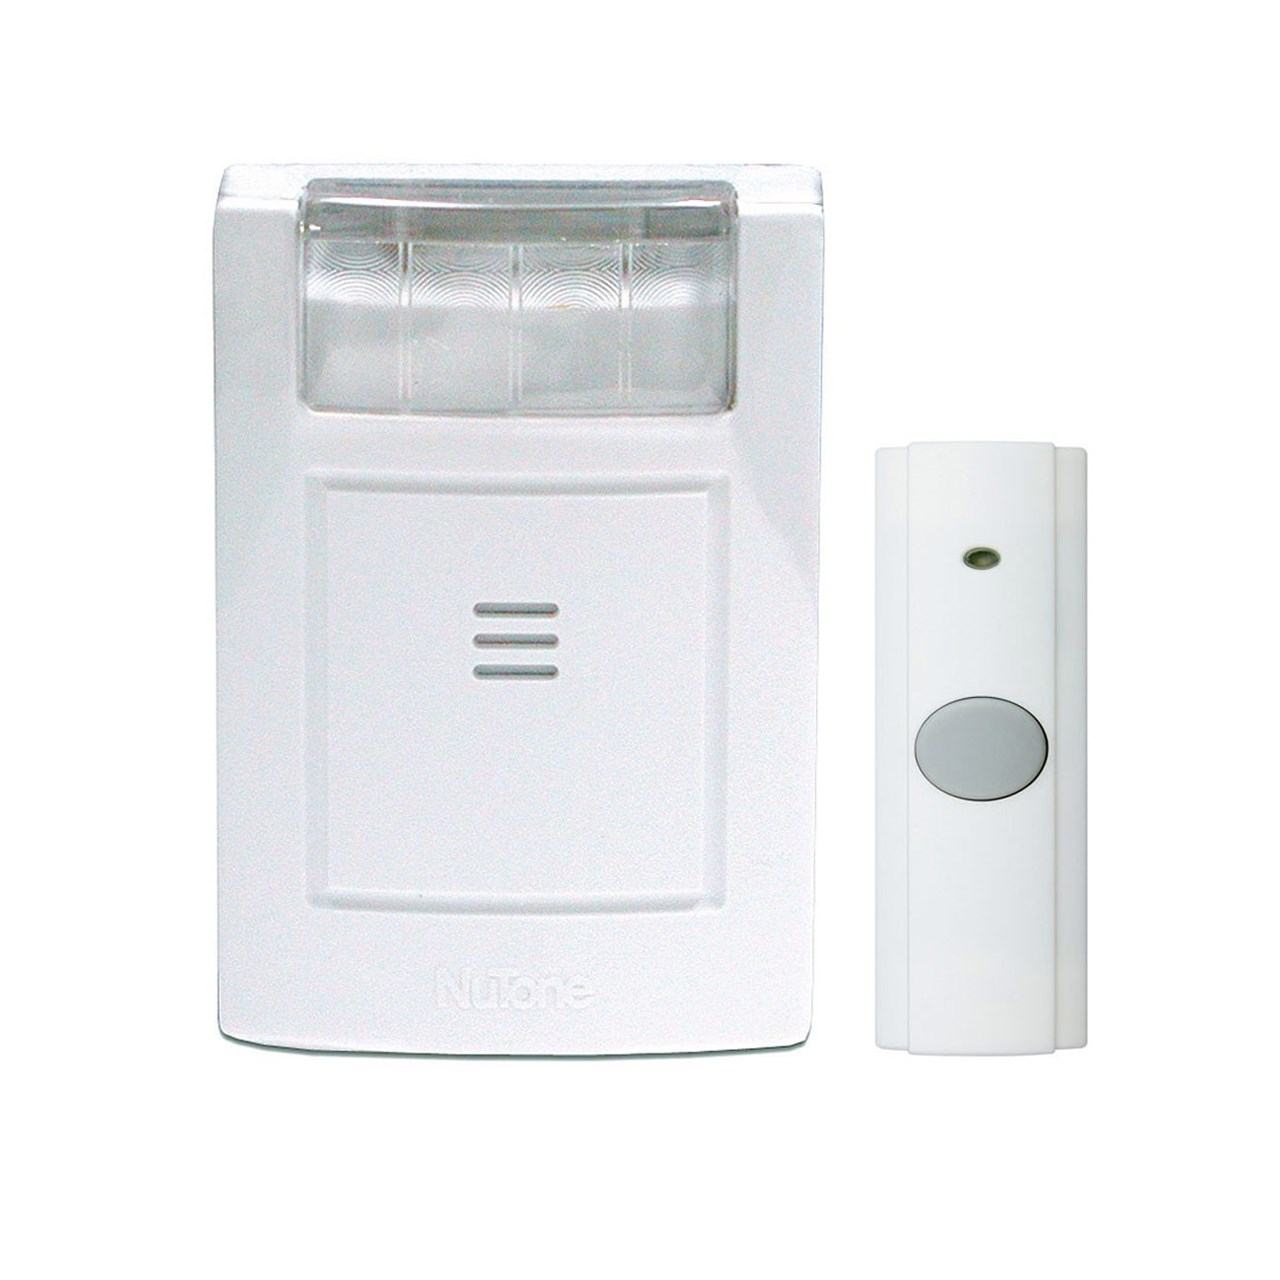 Maxiaids Nutone Strobe Door Chime